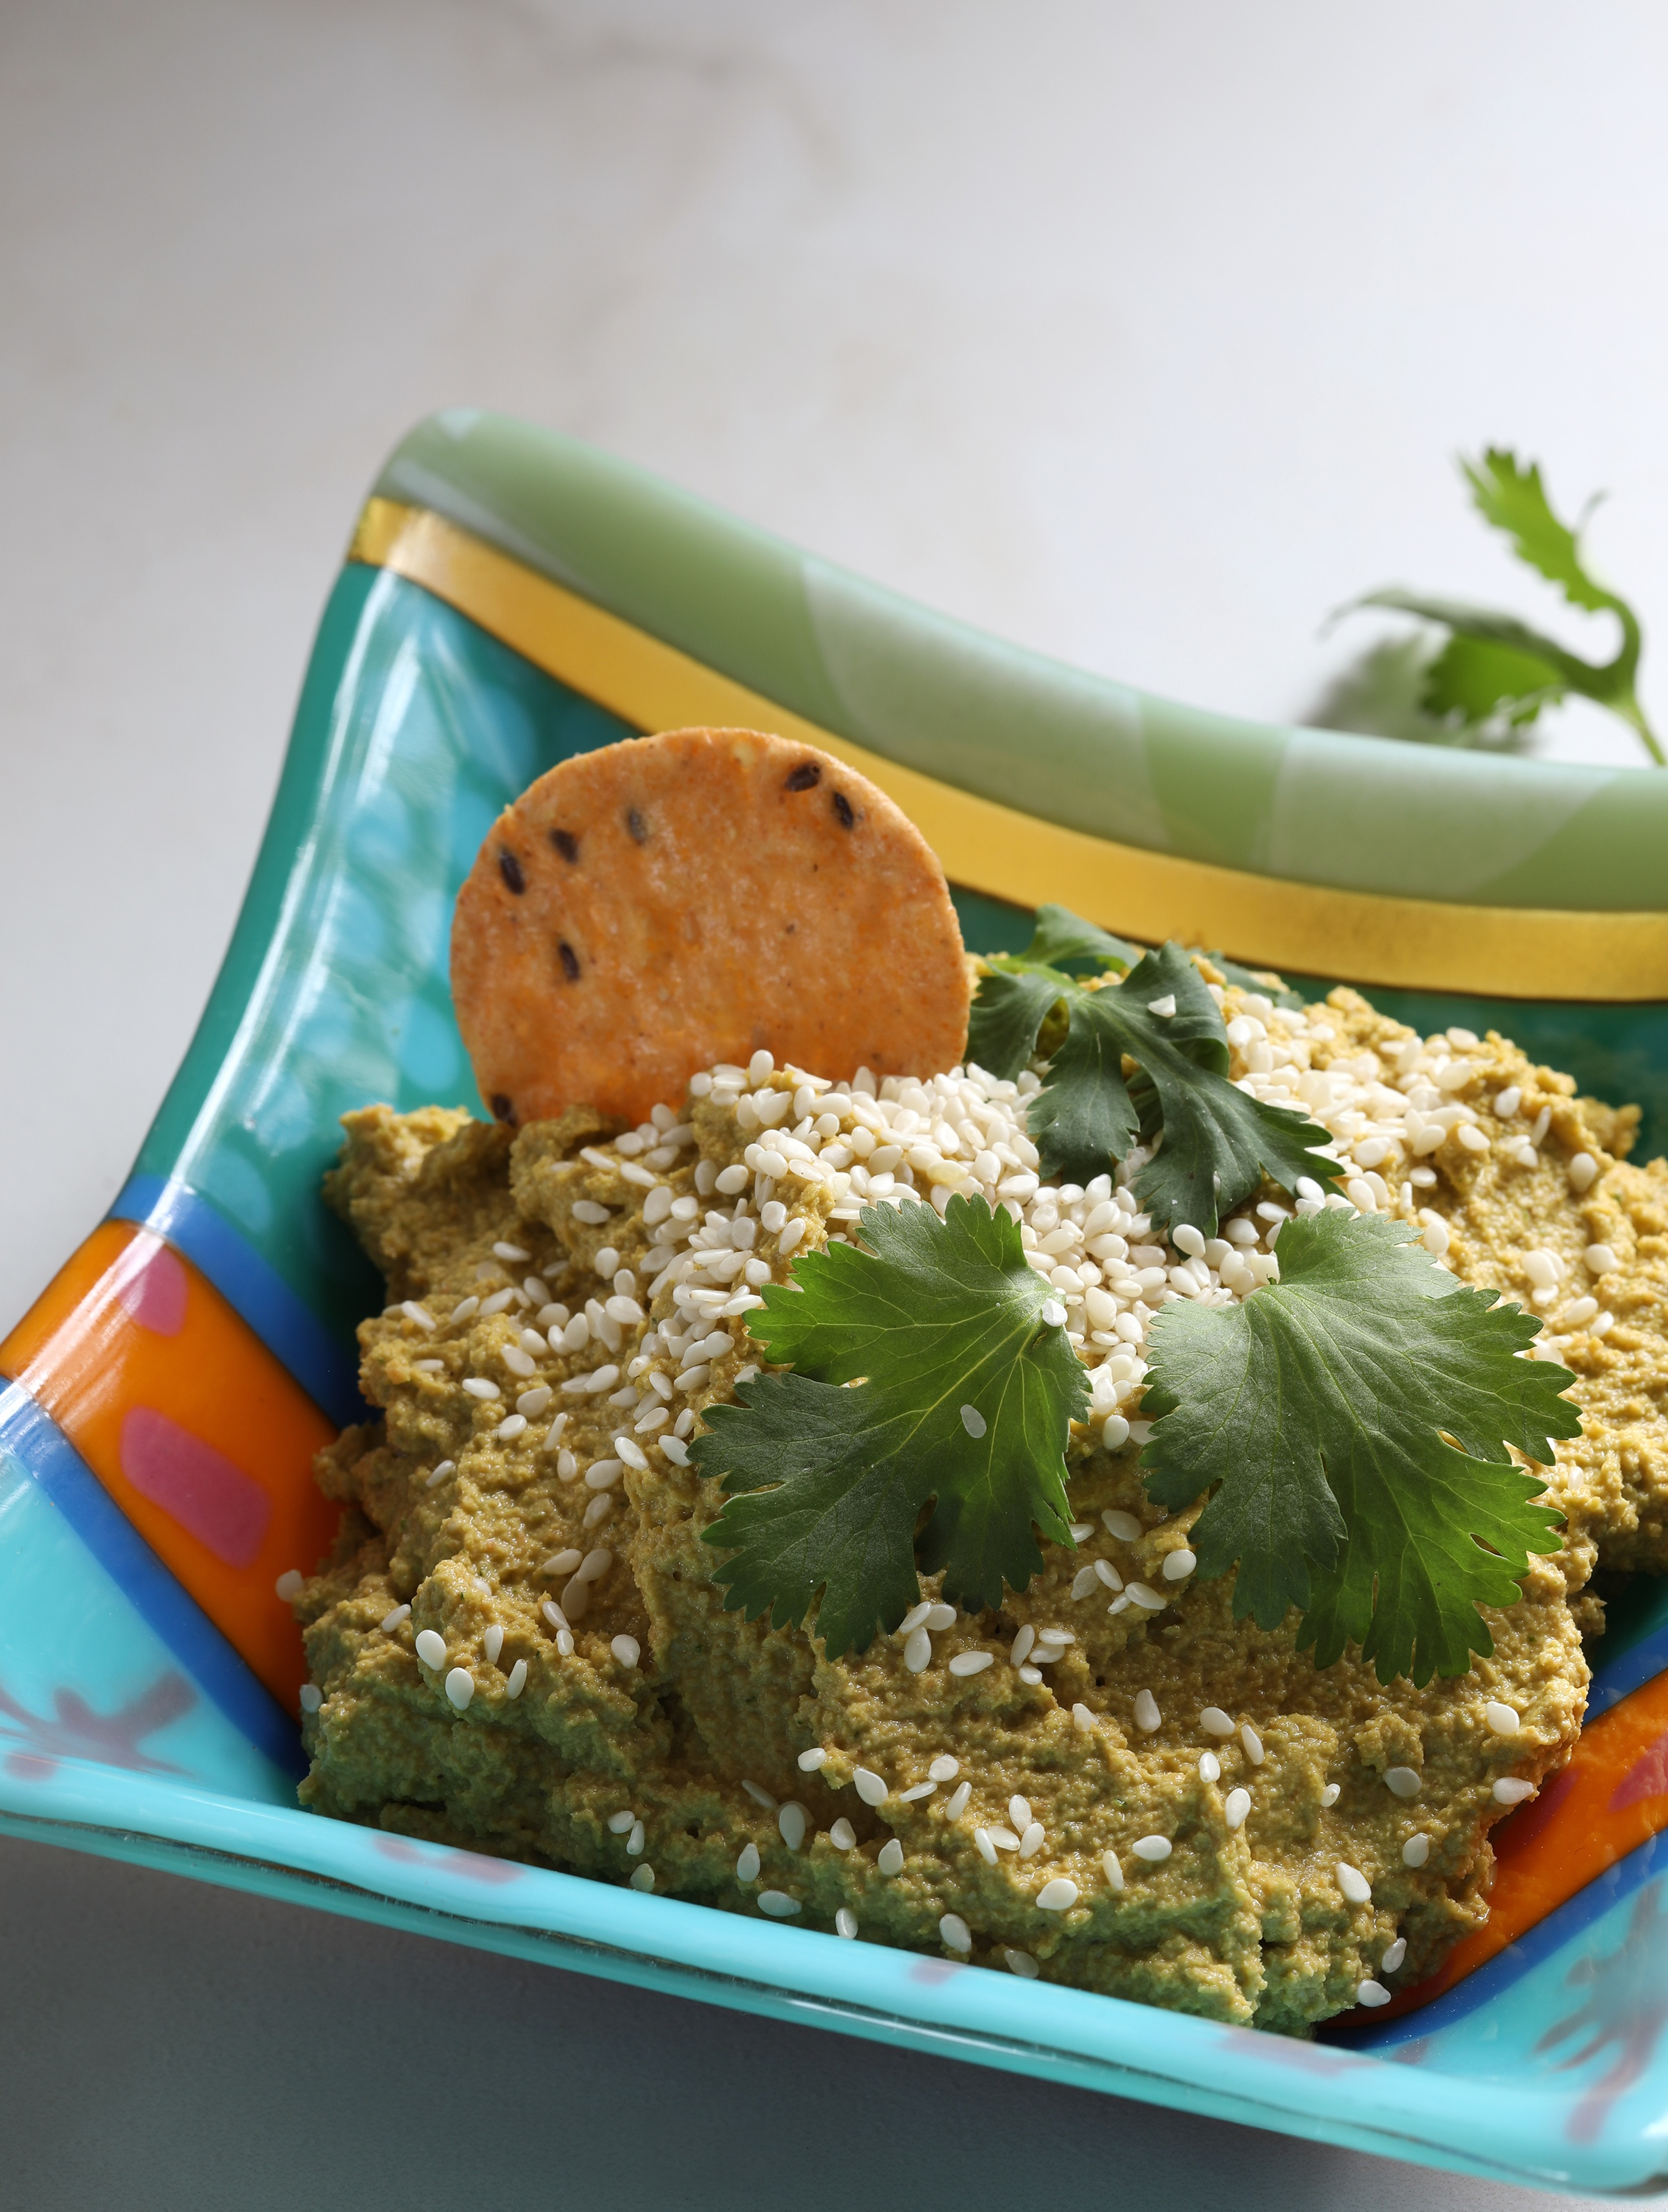 Vegan Carrot Cashew Dip in bowl with sesame seeds and cilantro sprinkled on top